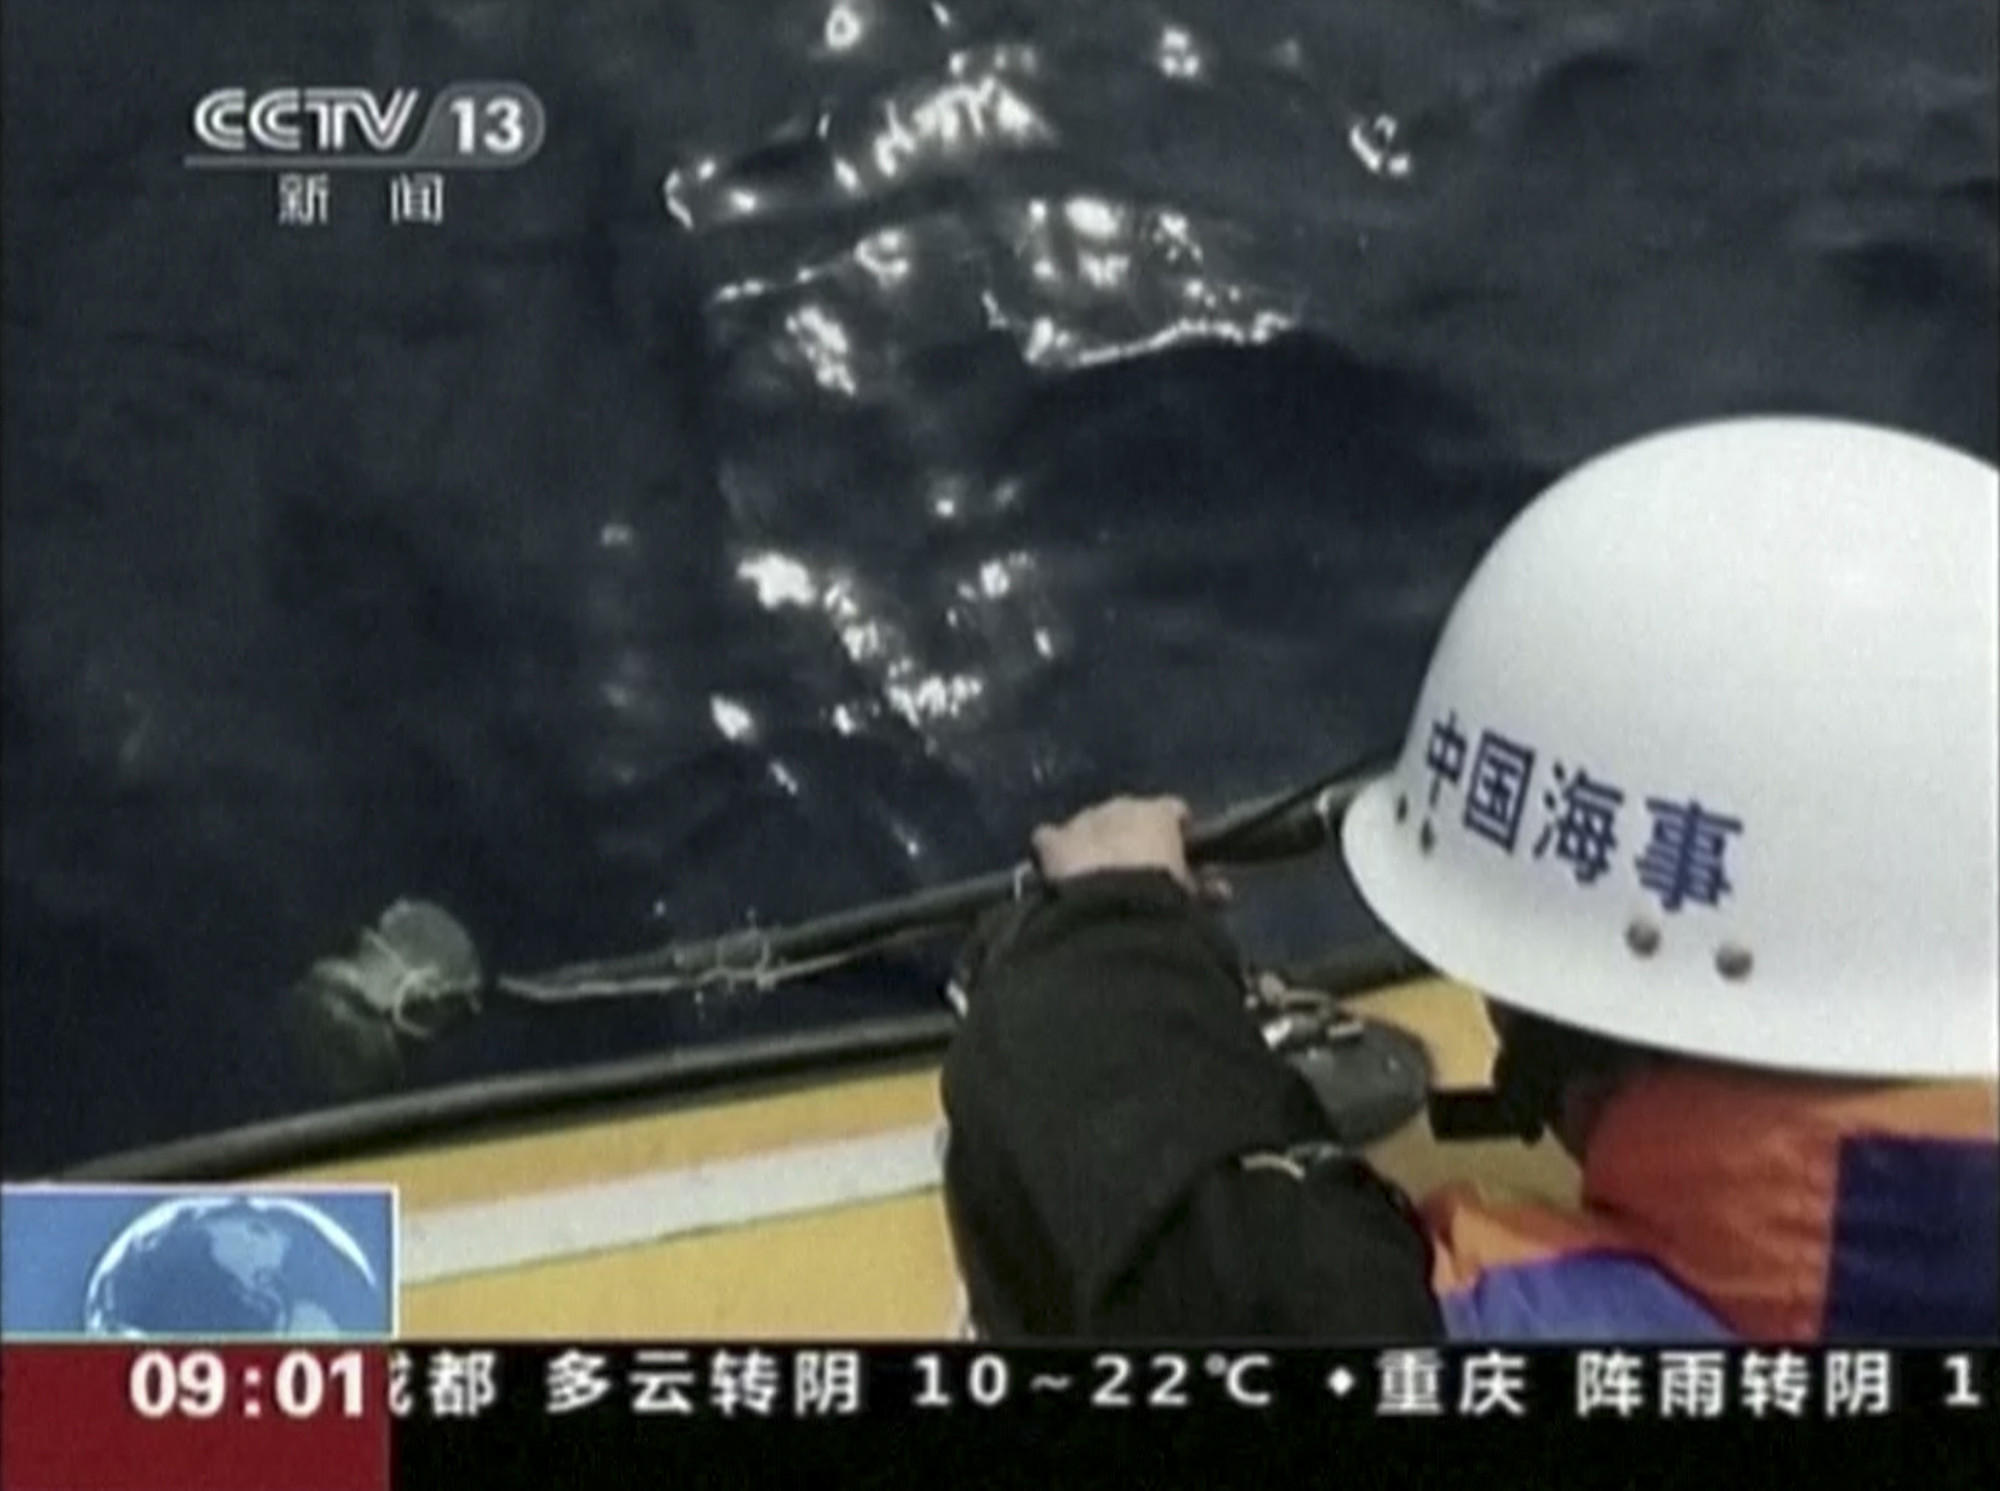 In this image taken from video, a member of a Chinese search team uses an instrument to detect electronic pulses Saturday while searching for the missing Malaysia Airlines Flight 370 on board the patrol vessel Haixun 01 in the south Indian Ocean.